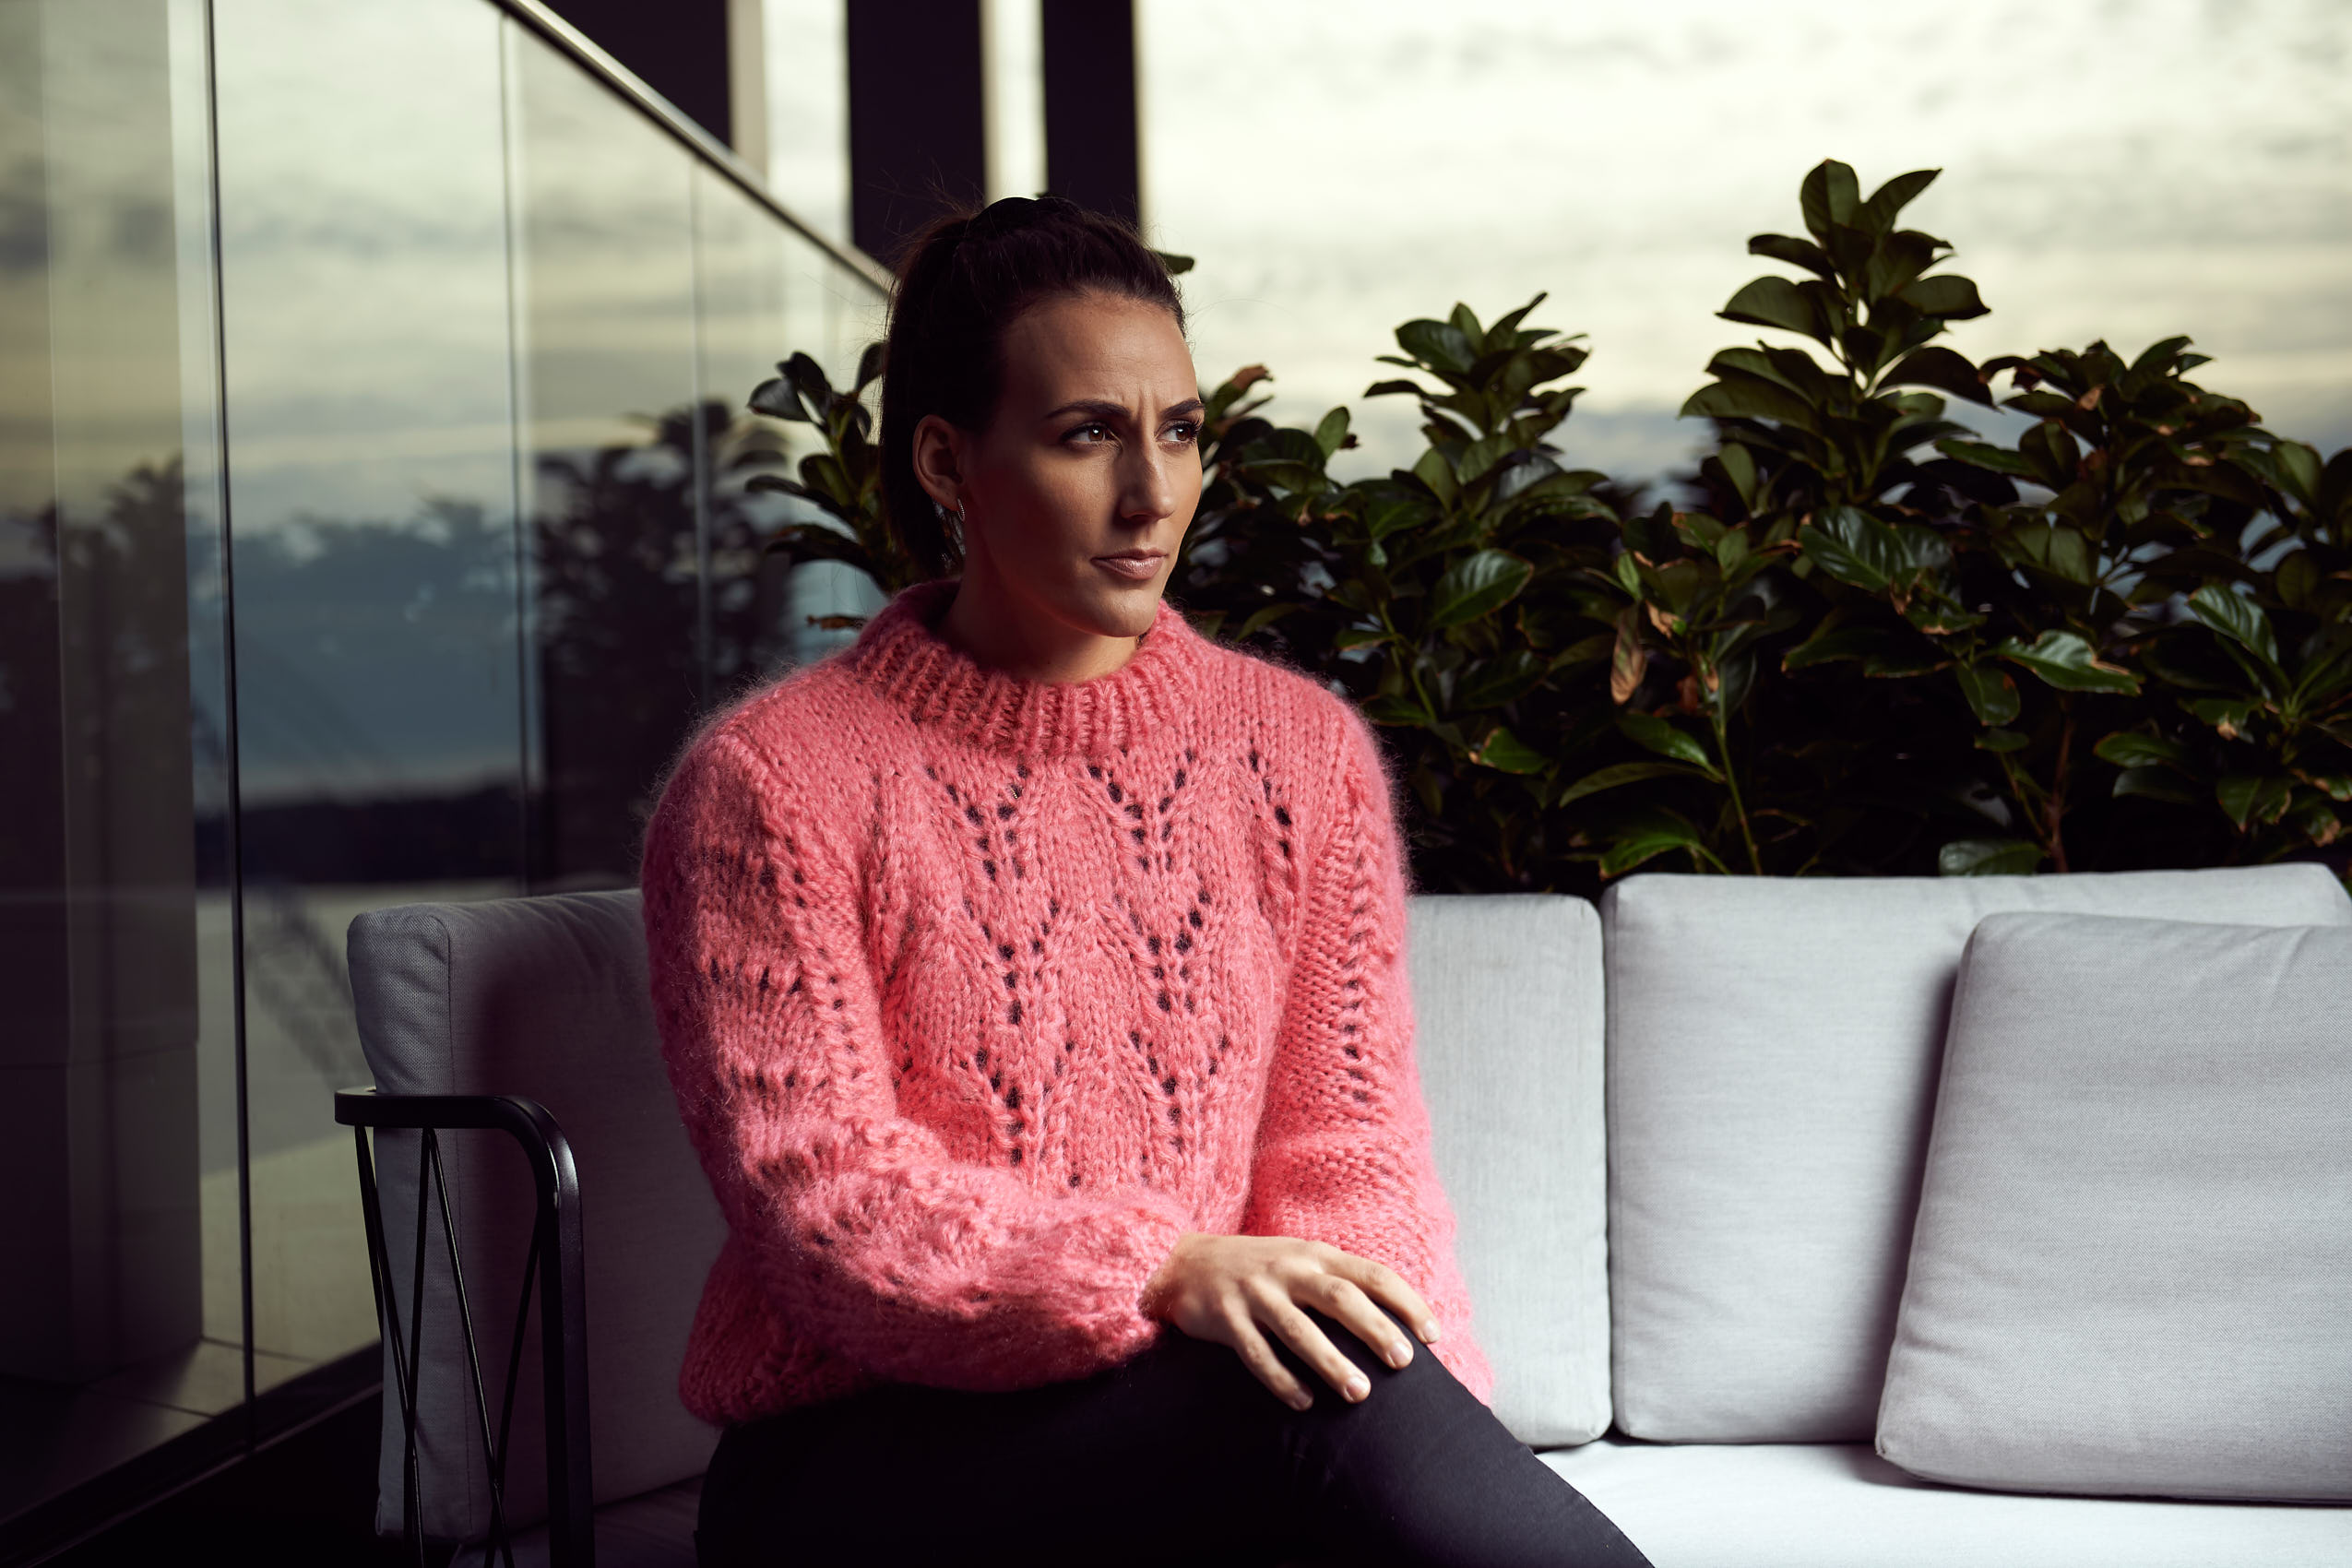 Woman in pink sweater sitting on grey couch at outdoor terrace photo by Marcel Tiedje